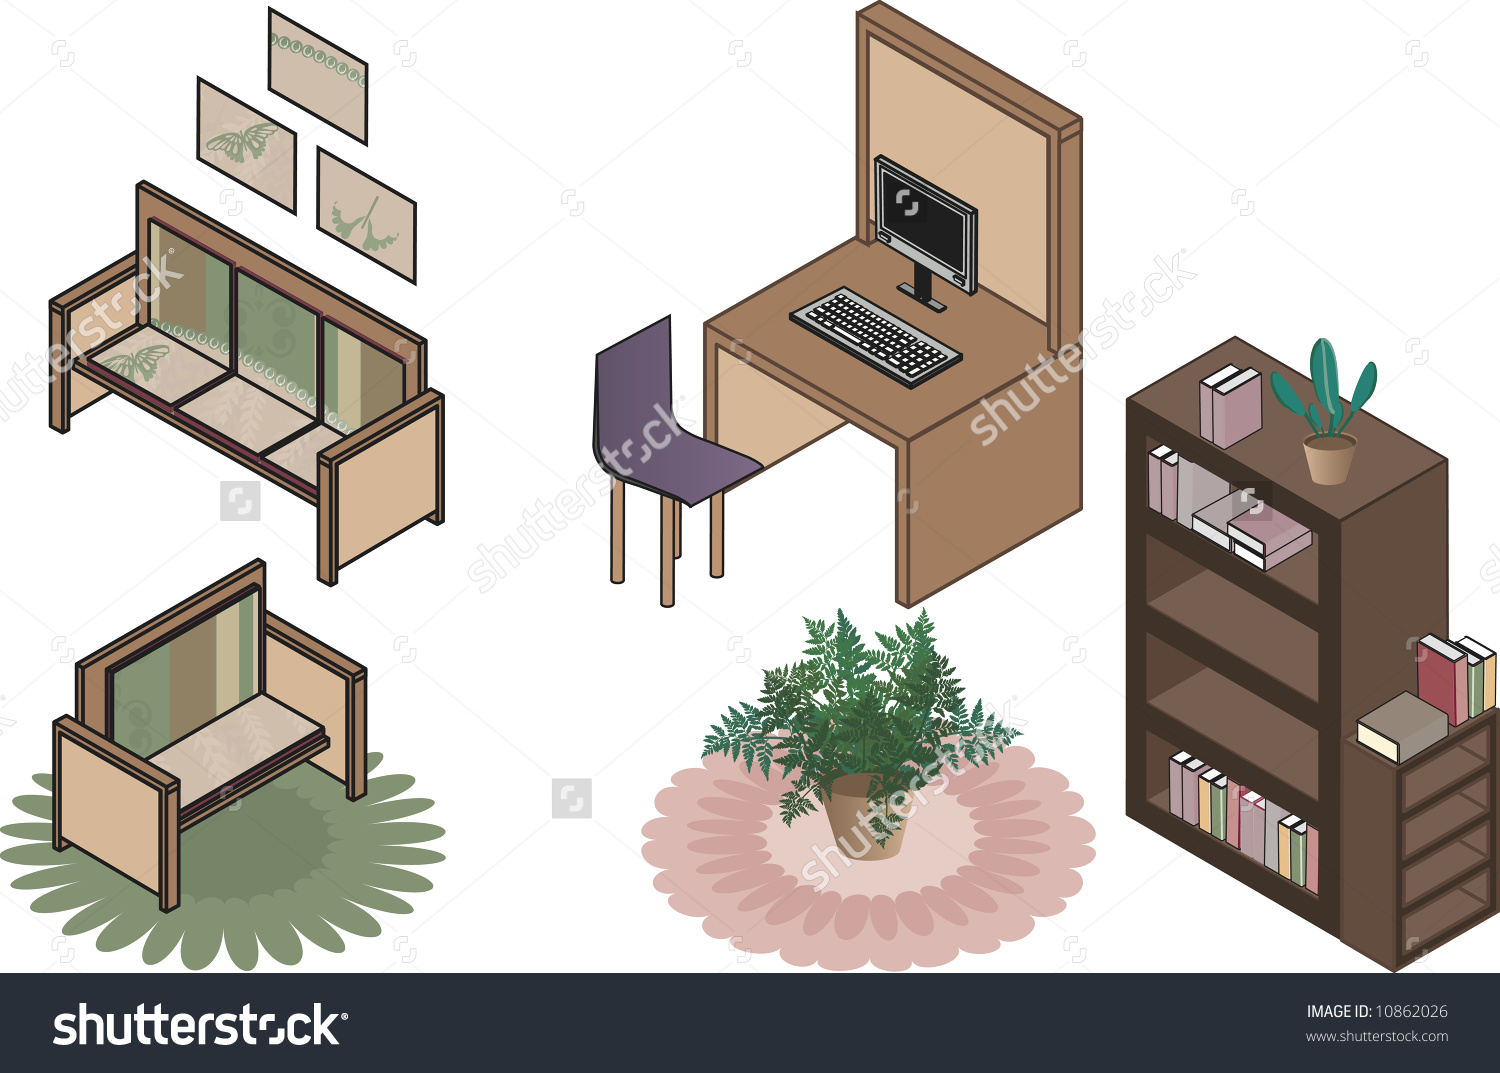 Isometric Illustration Of Office Clip Art All In Individual Groups.